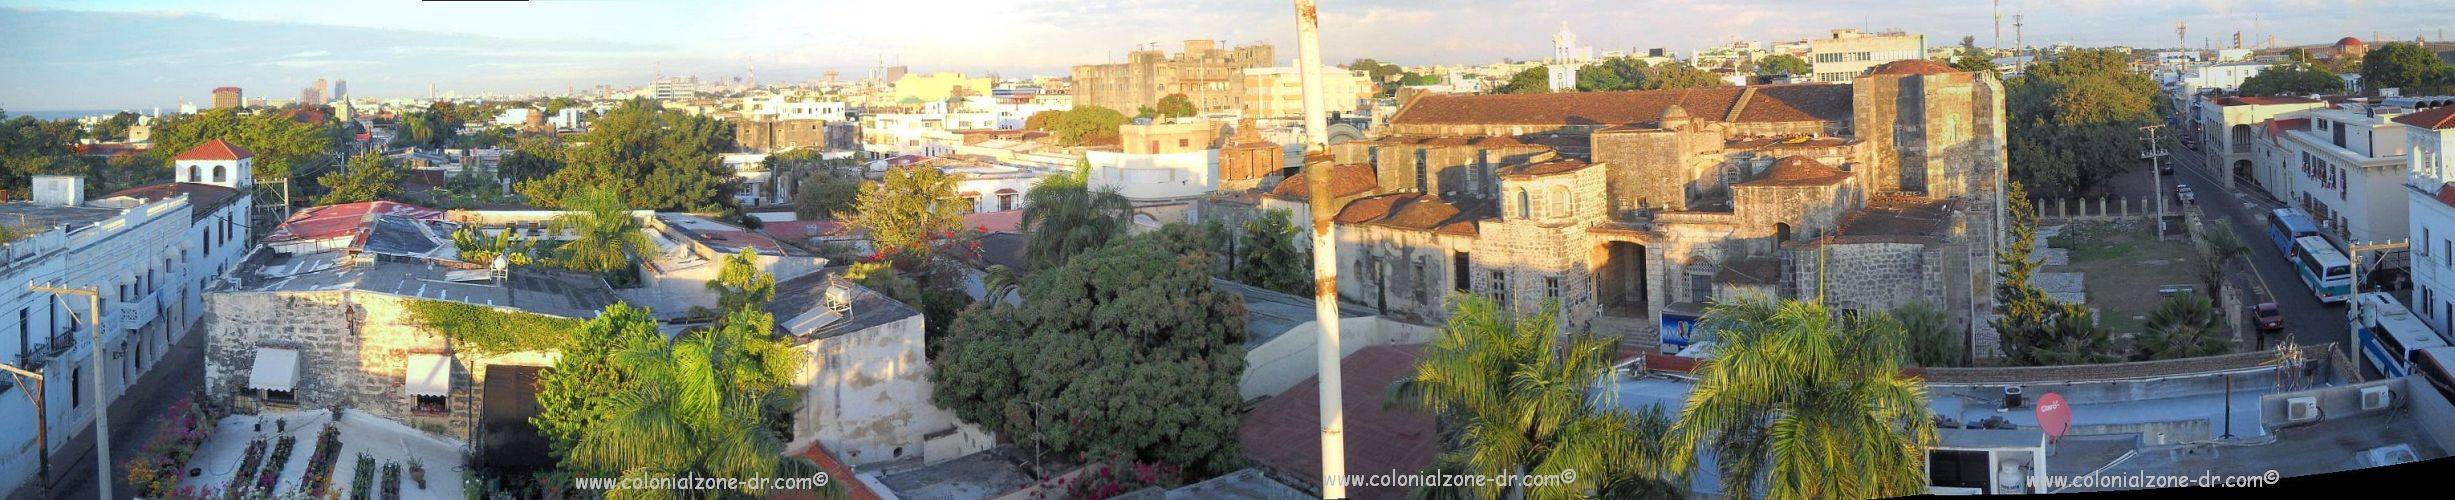 panoramic view of Cuidad Colonial from Padre Billini to Isabel la Catolica